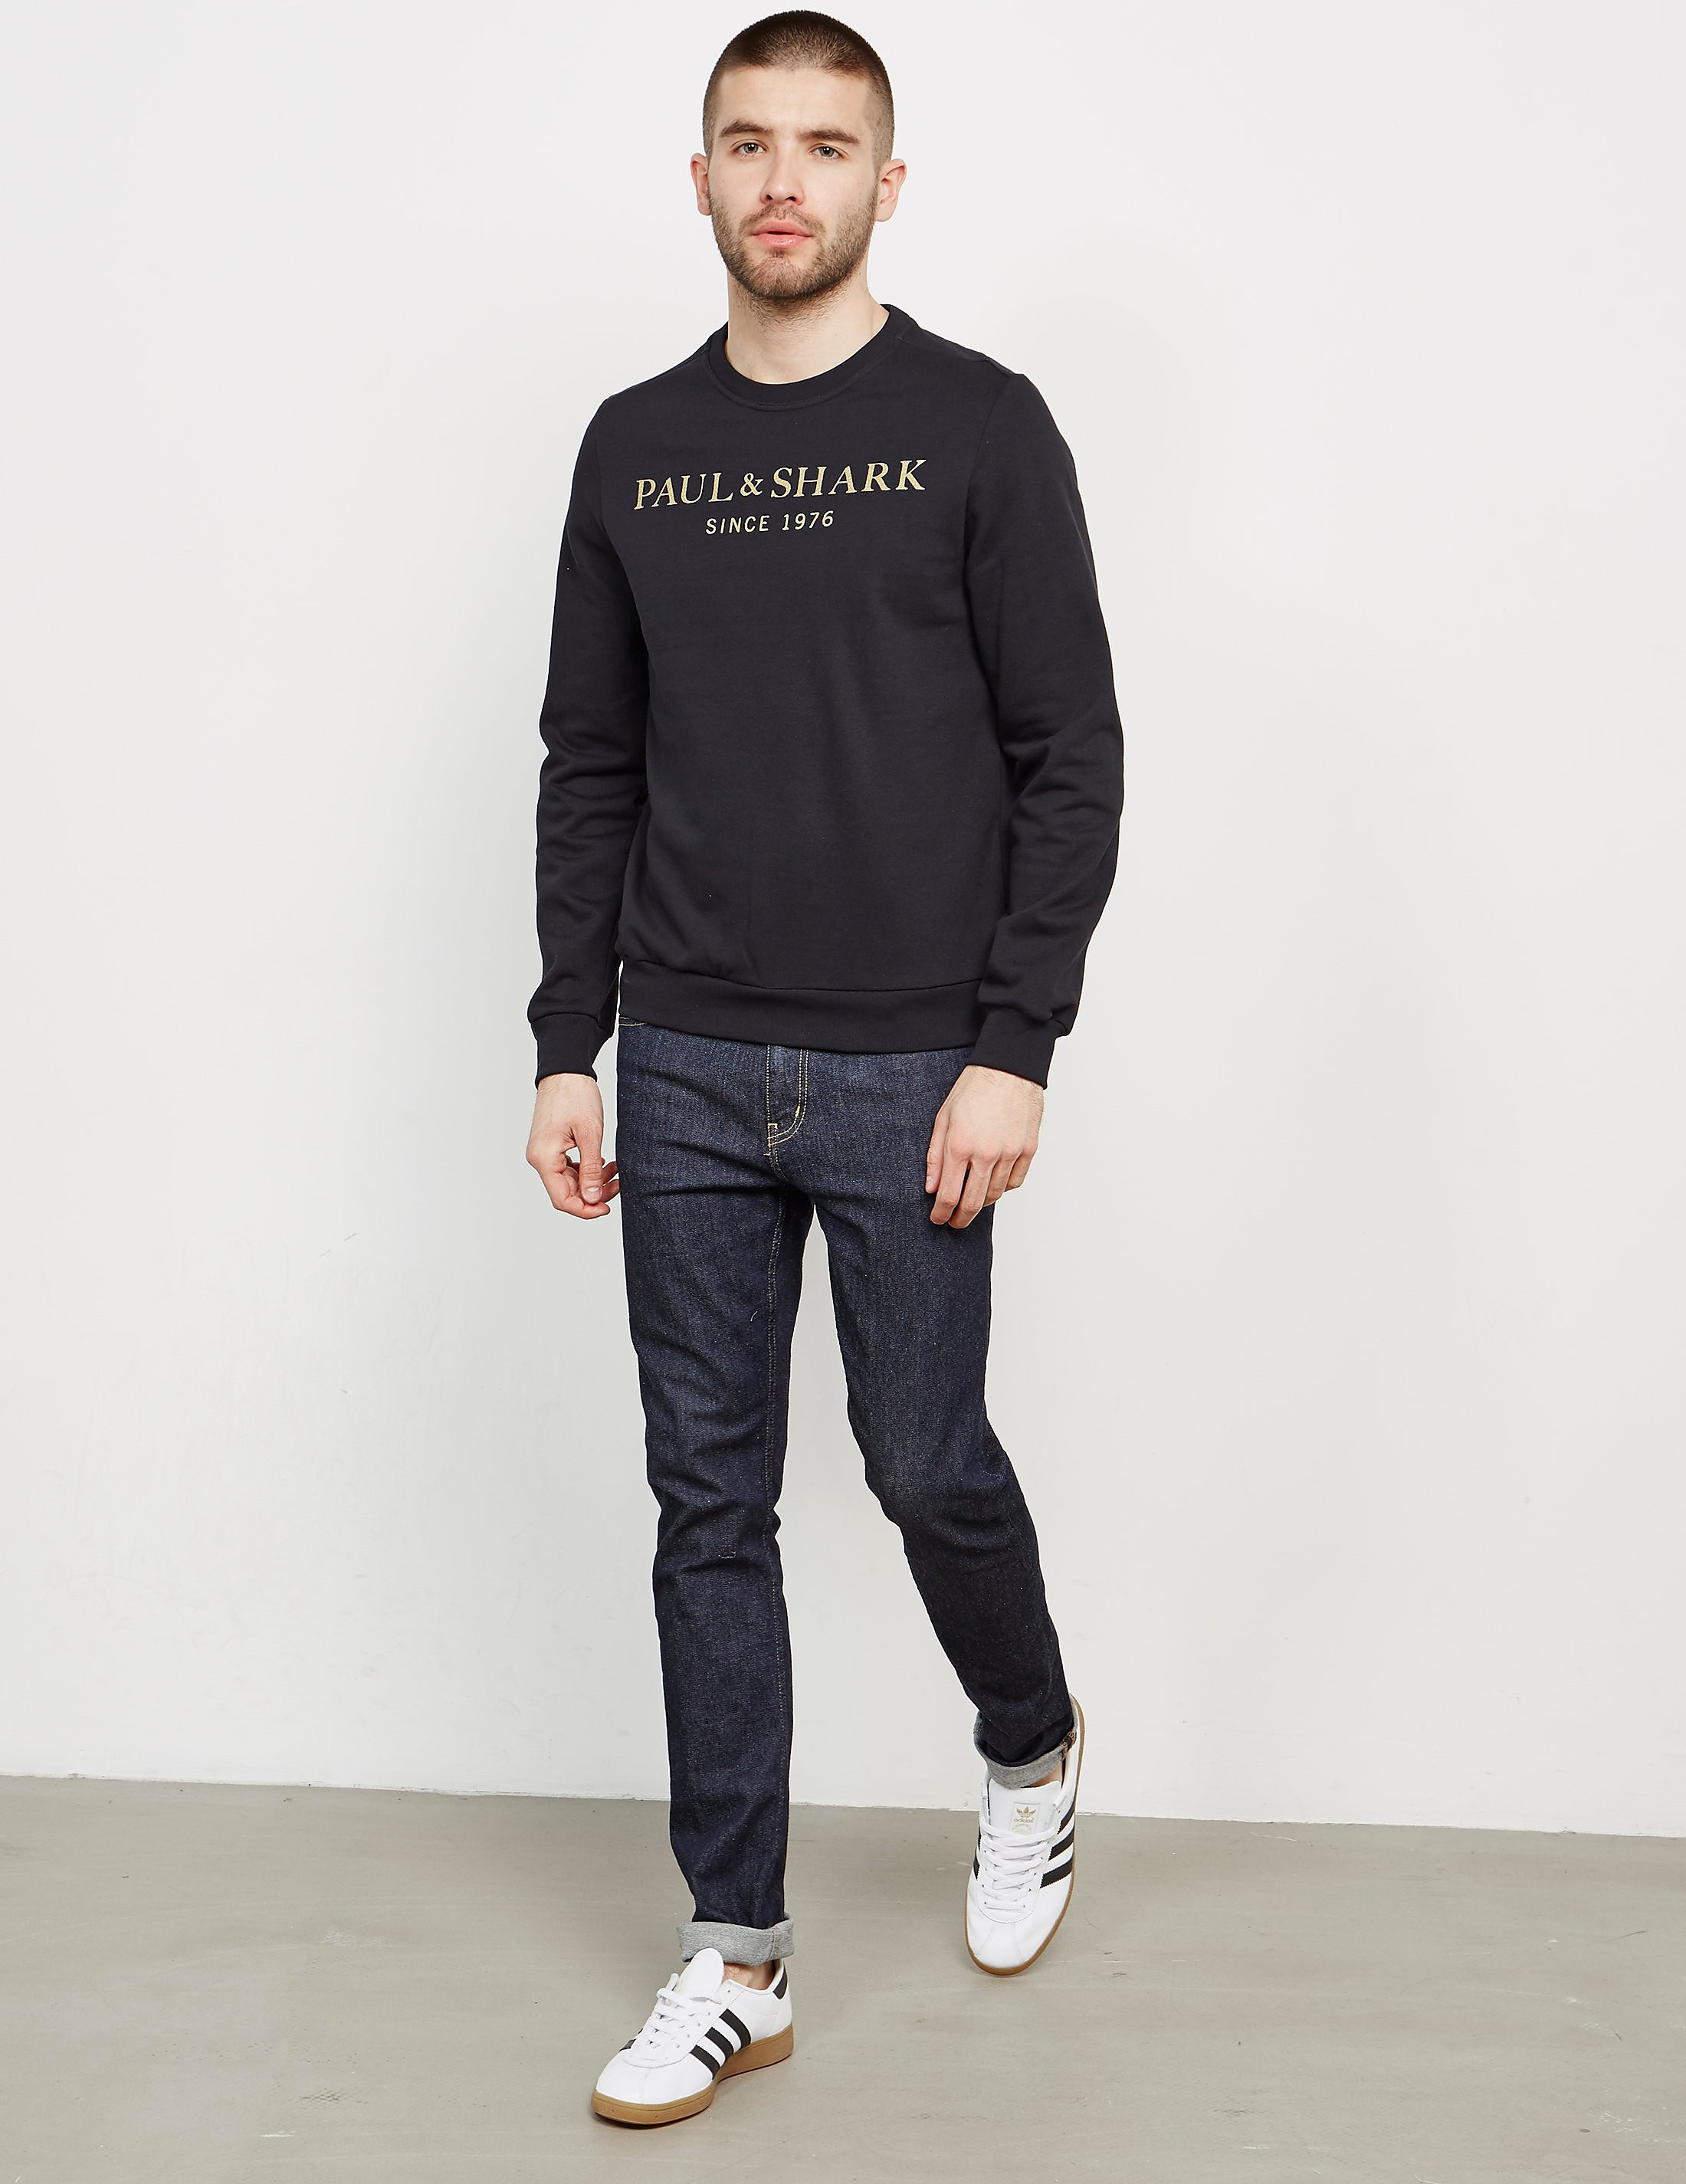 Paul and Shark Gold Logo Crew Sweatshirt - Exclusive